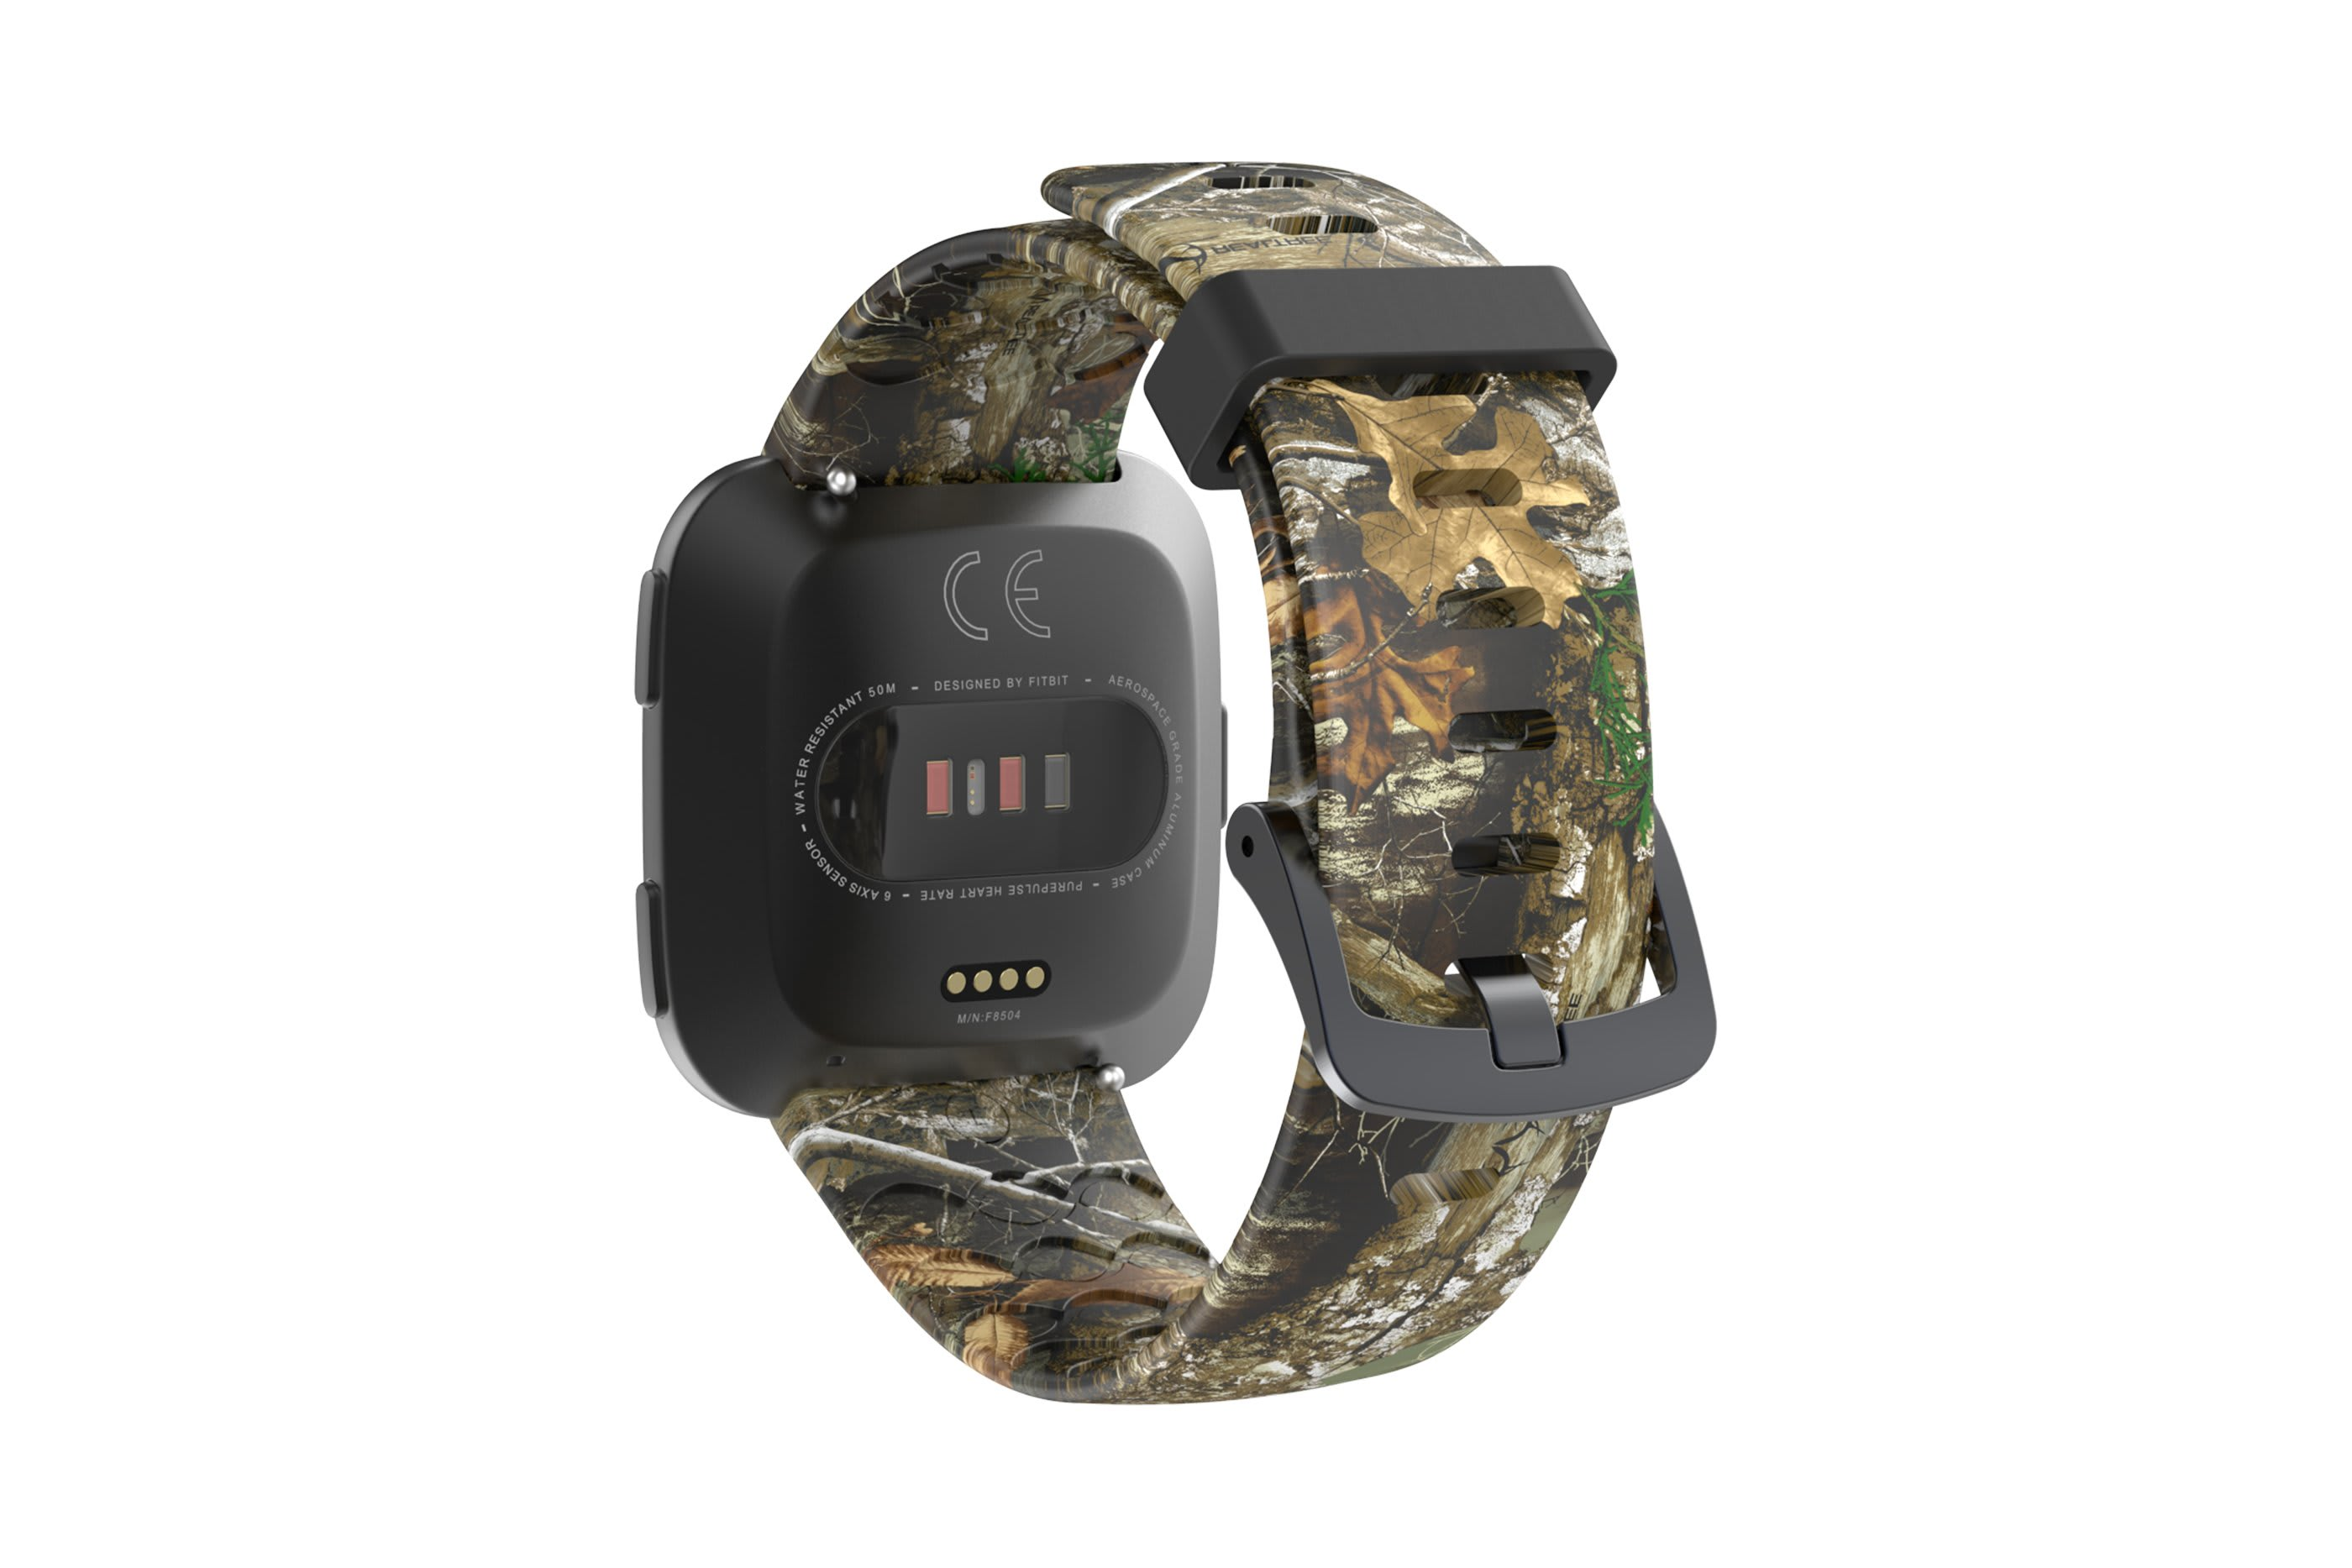 Realtree Edge fitbit versa watch band with gray hardware viewed from rear